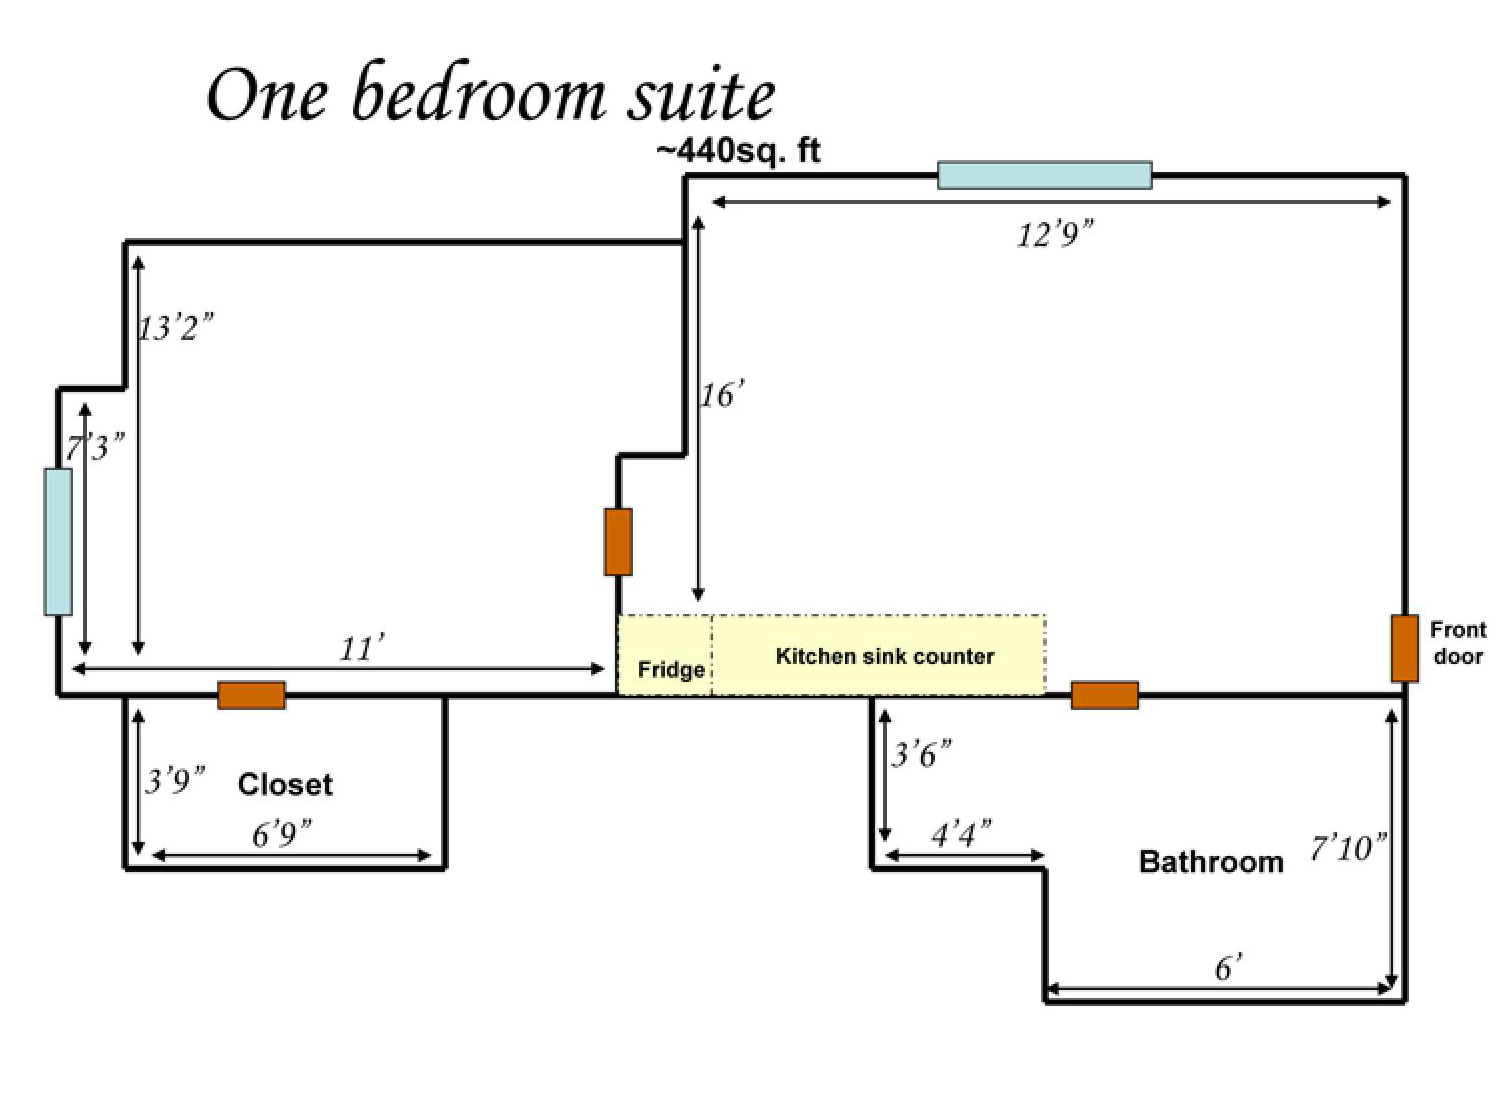 One-bedroom floor plans showing 440 square feet of space for a closet, bathroom, kitchen and bedroom.